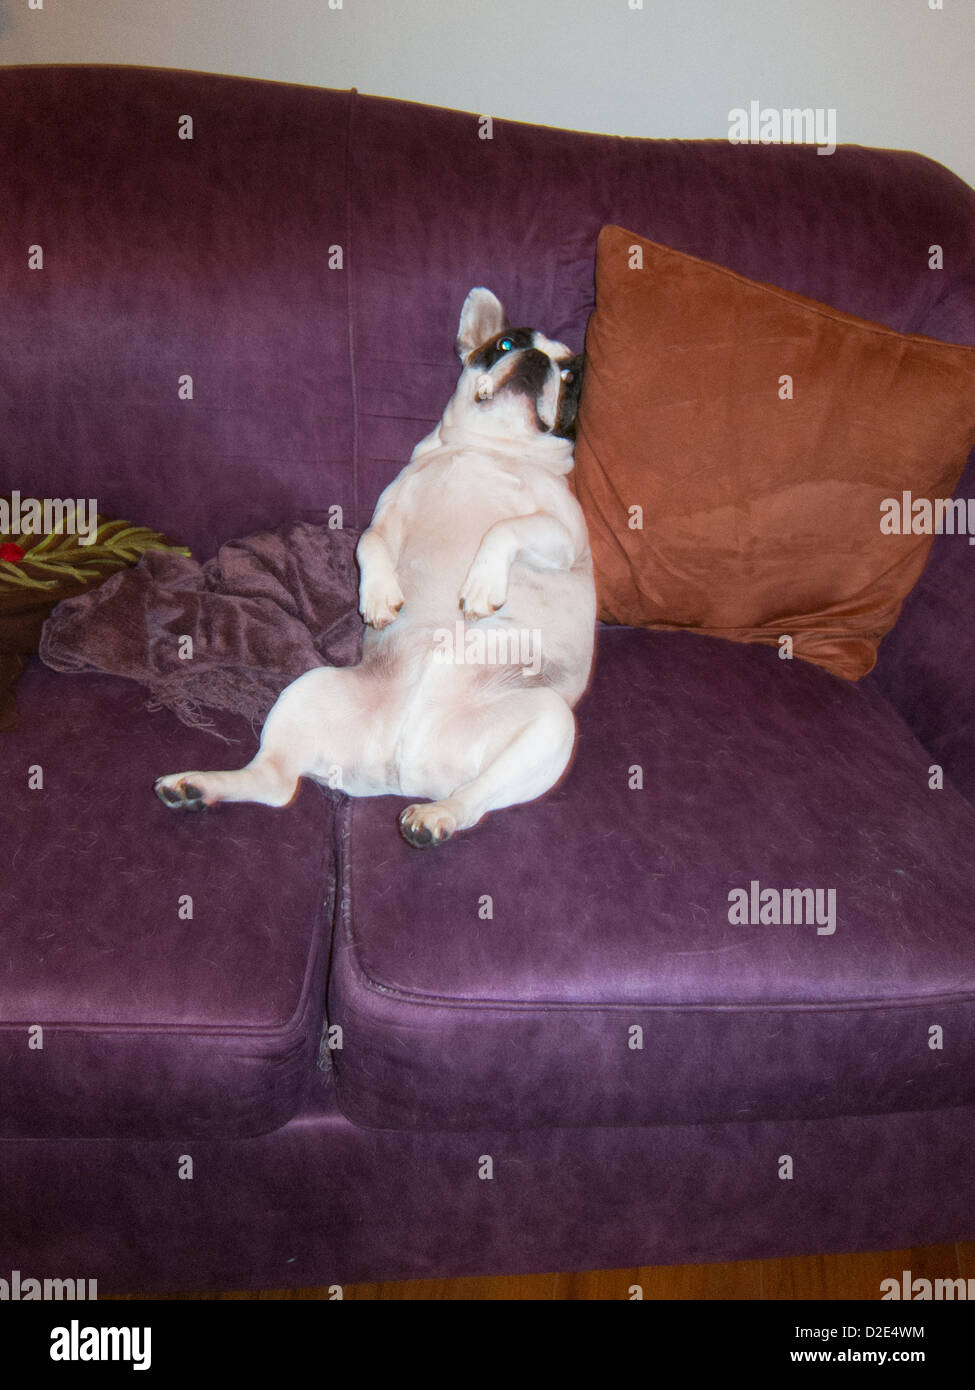 French Bulldog relaxing like a human on sofa. - Stock Image